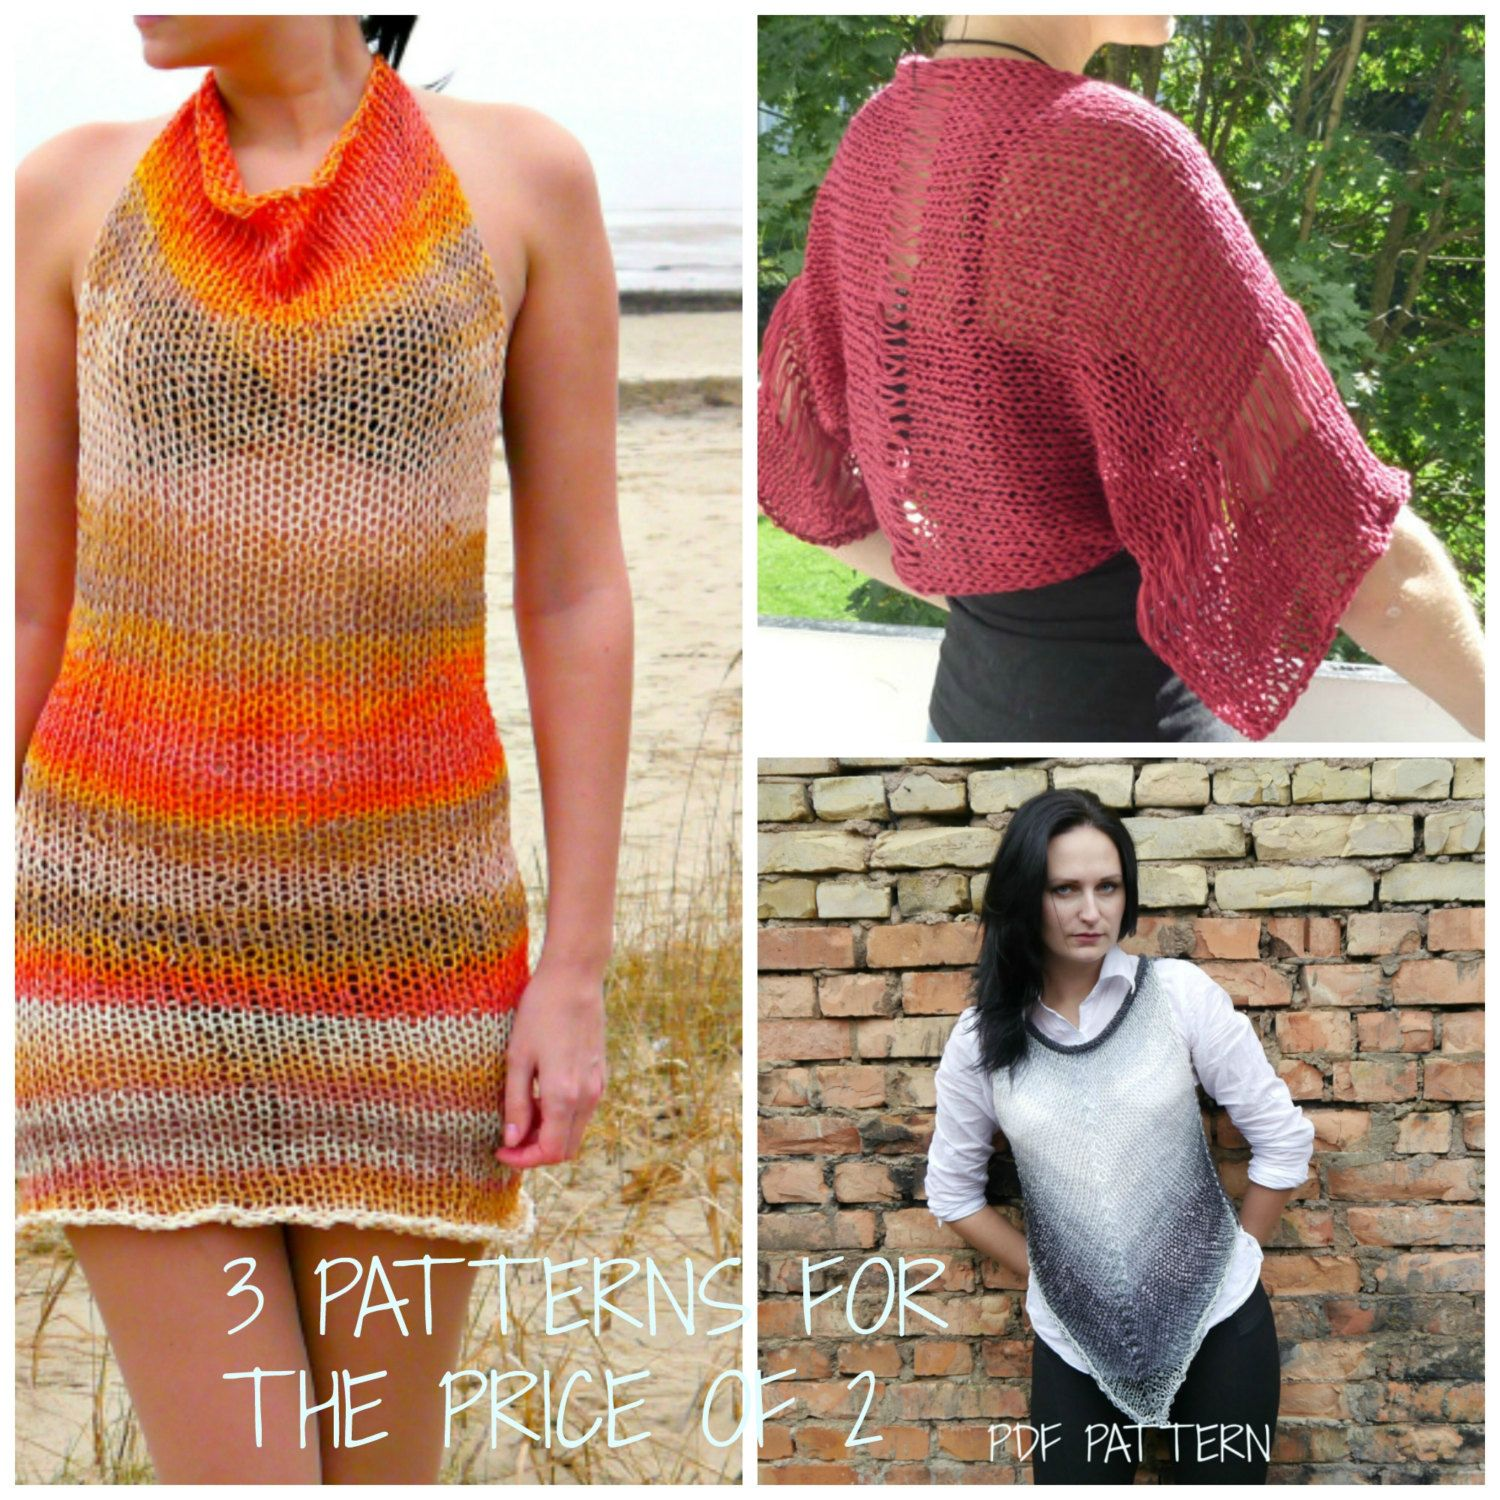 How to tie a dress with knitting needles